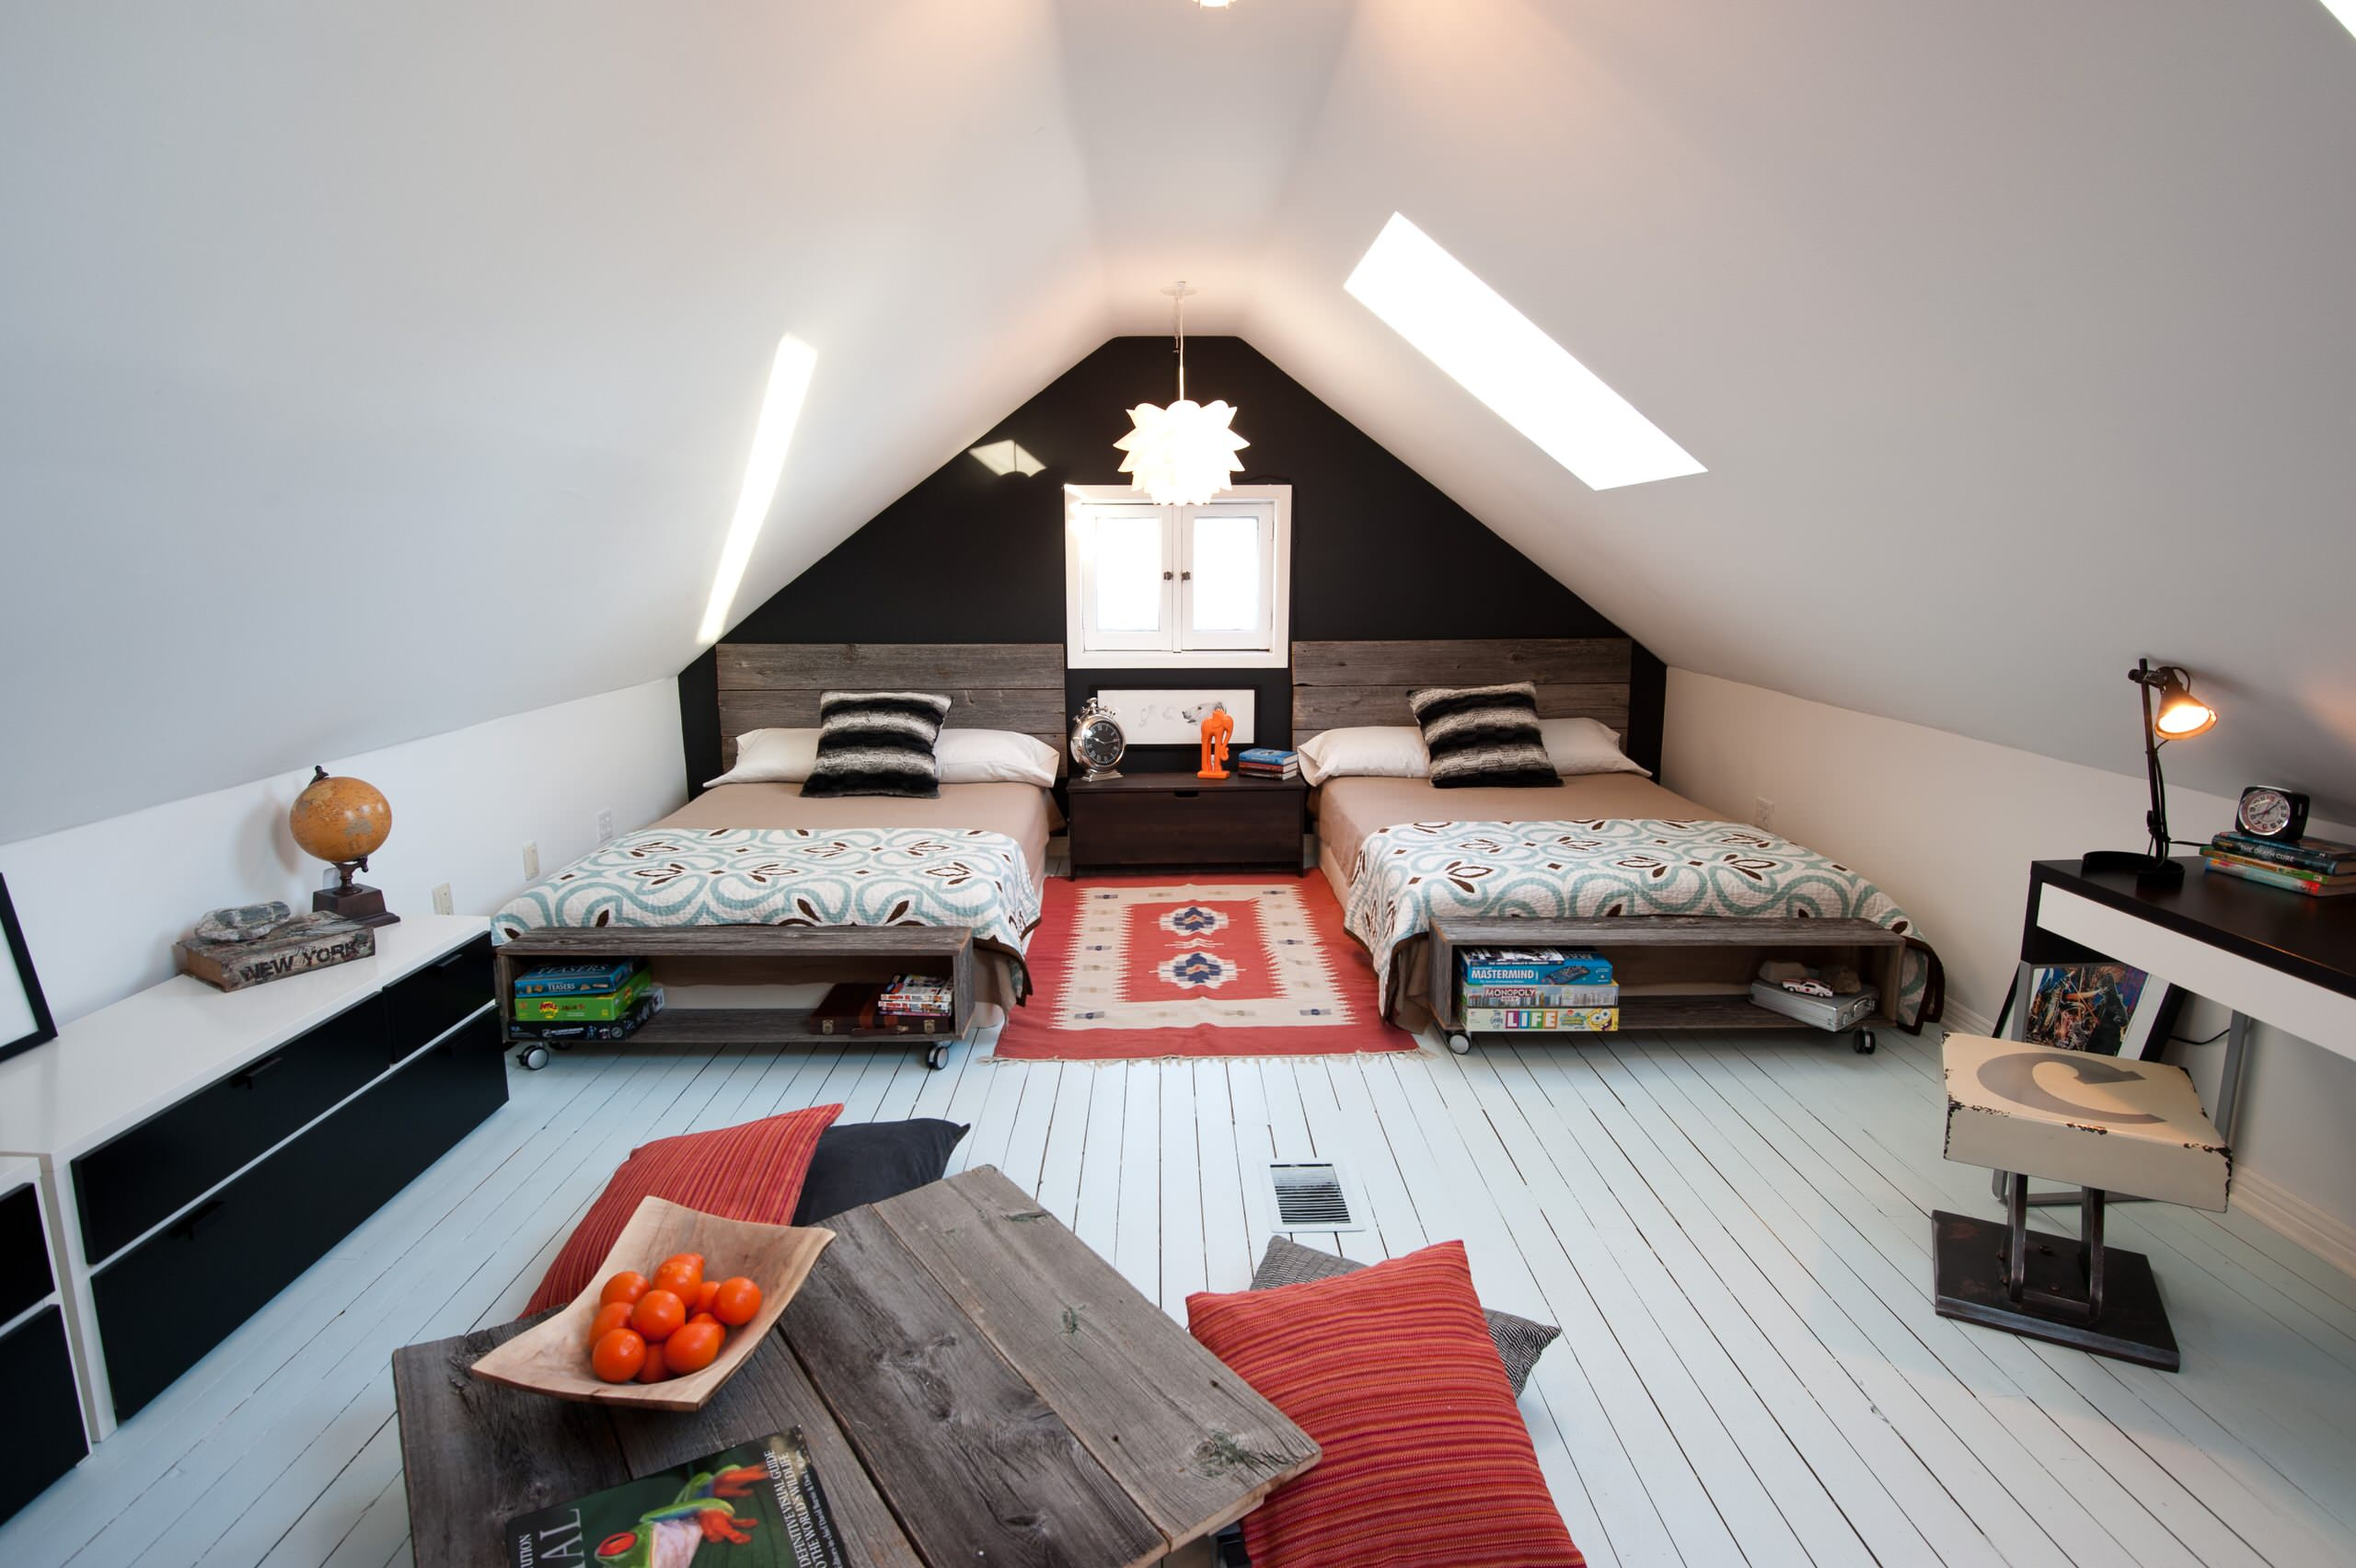 Inspiring Bedroom Decor with Reclaimed Wood Bed Ideas: Accent Wall In Bedroom With Casement Windows Plus Dark Wall And Flat Woven Rug Also Floor Cushions In Loft With Reclaimed Wood Bed For Shared Bedroom Plus Skylights Also Vaulted Ceiling